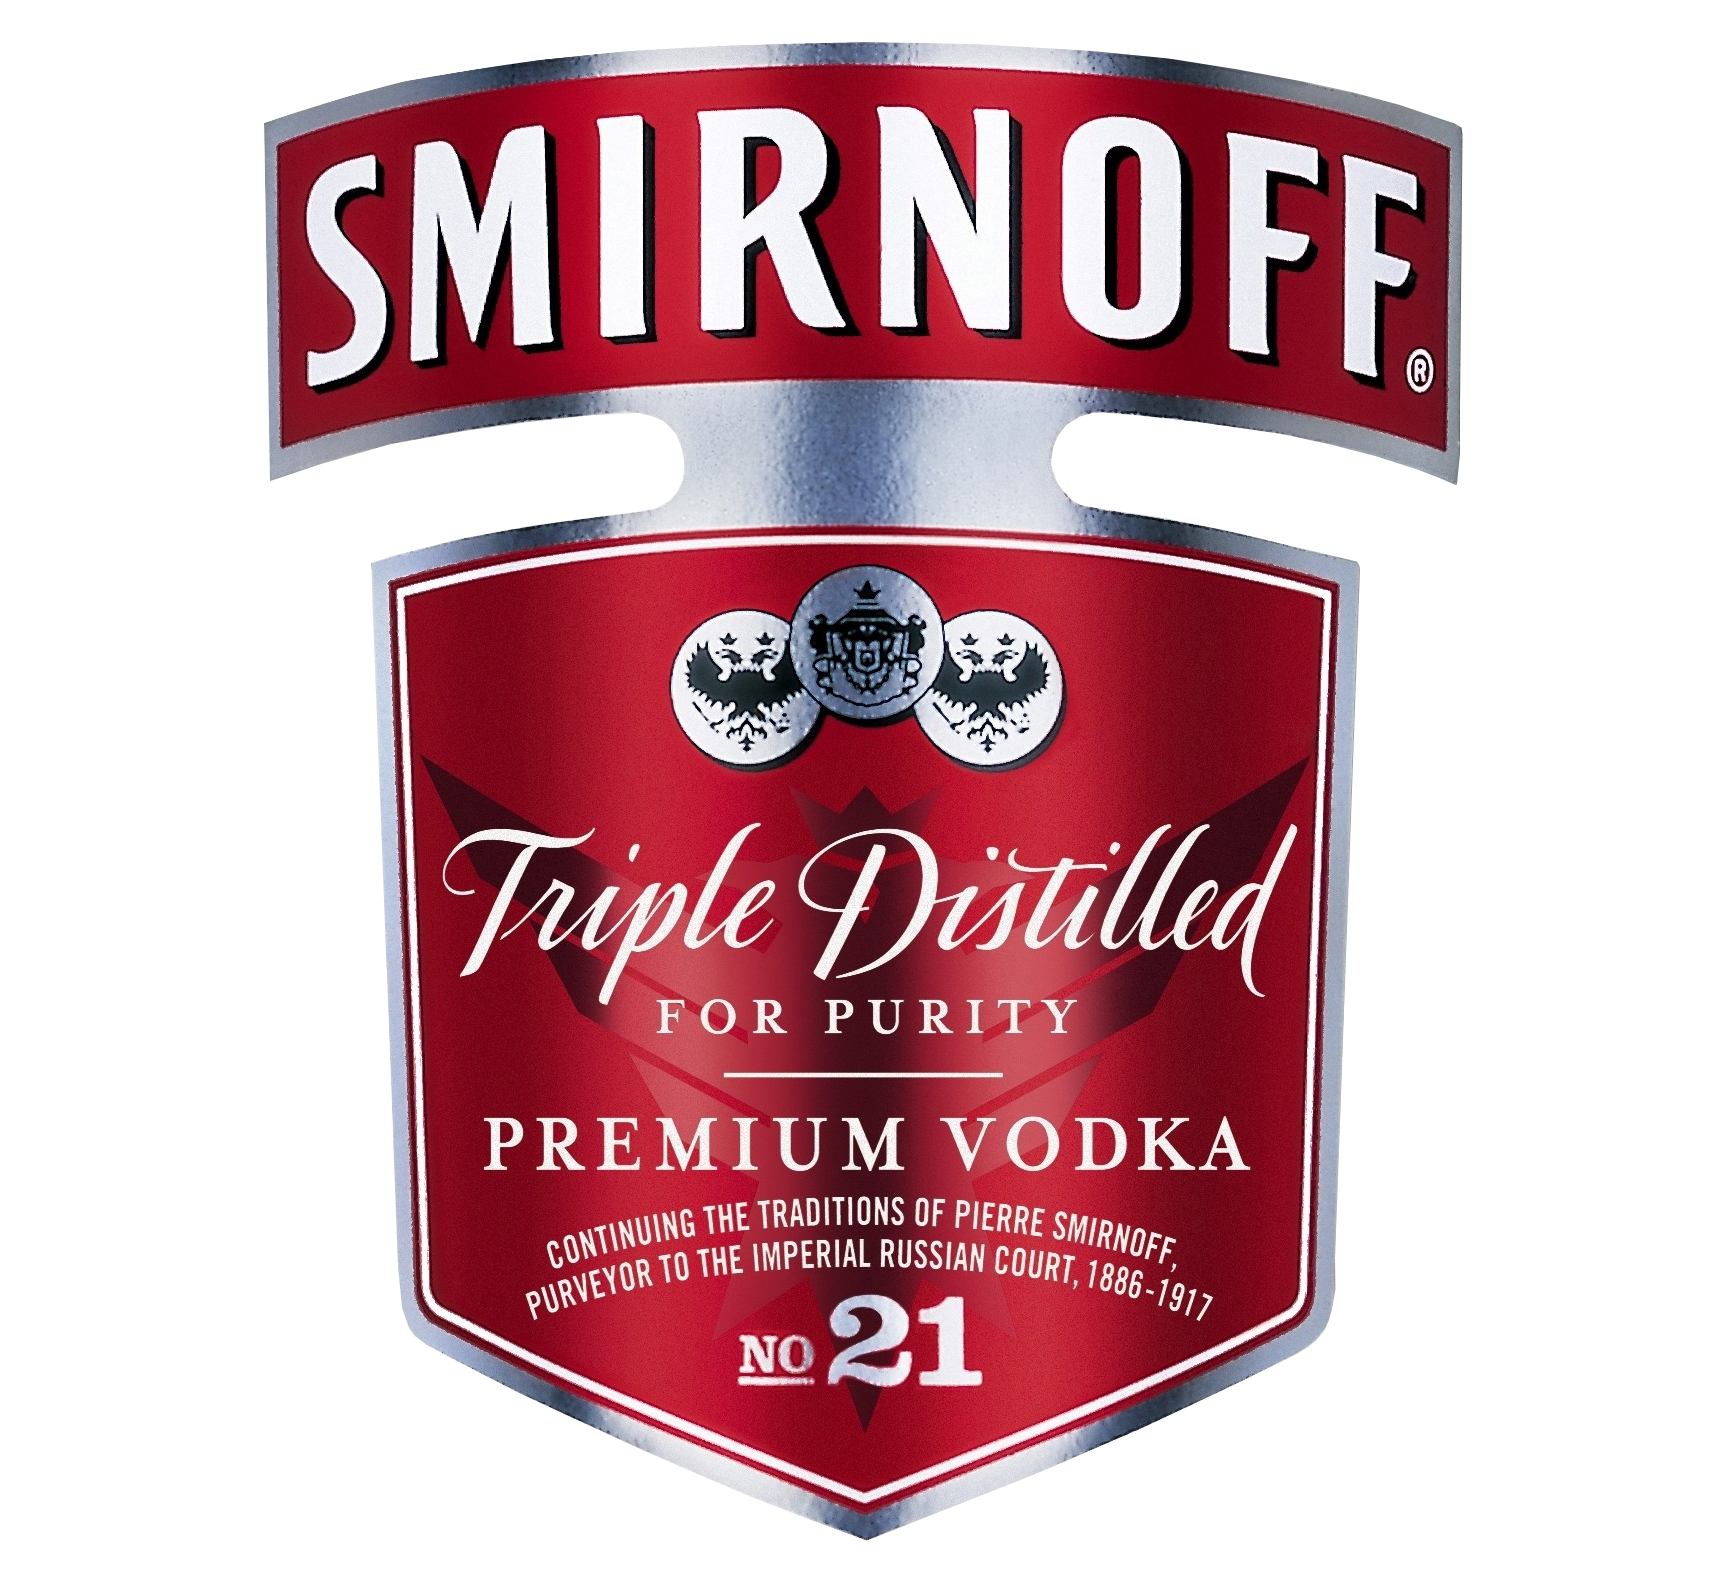 Cars Logo And Name >> Smirnoff HD Logos | Full HD Pictures